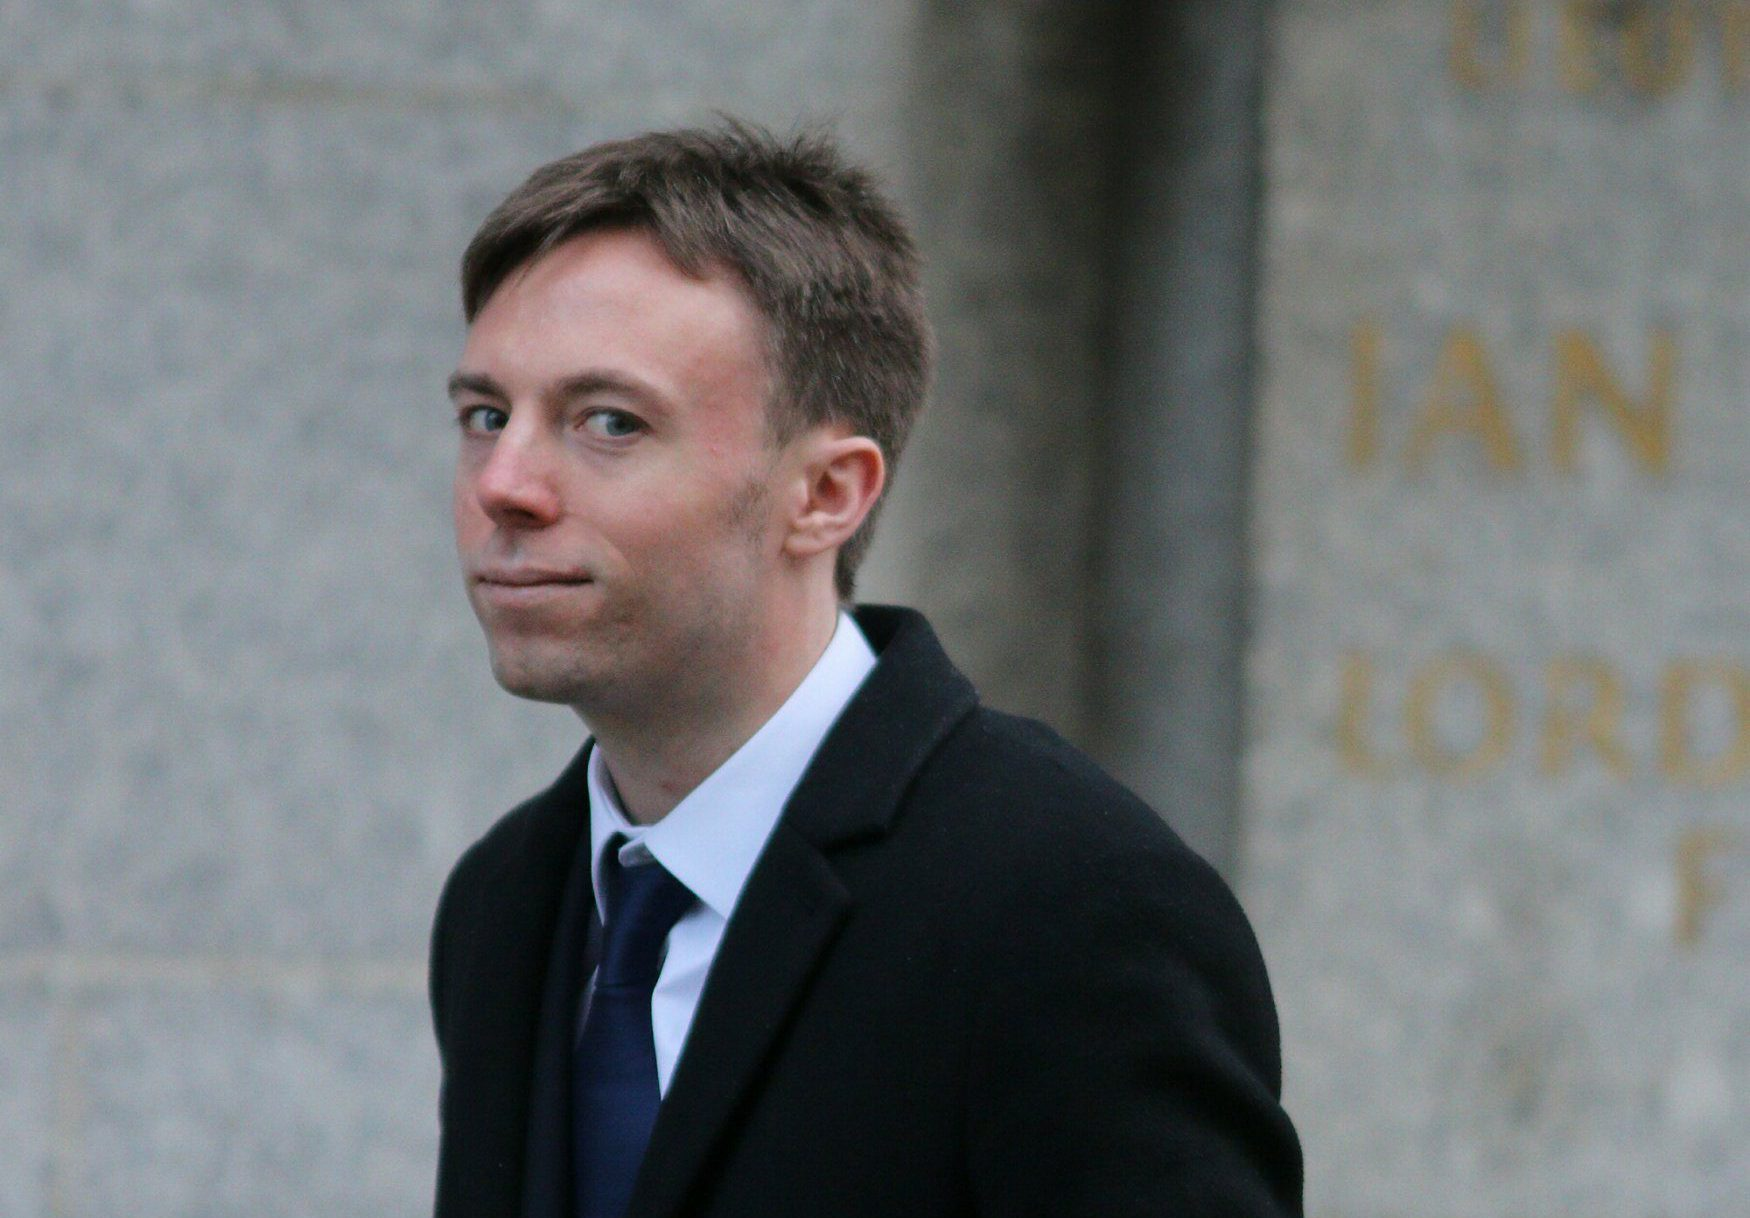 Pic shows Jack Sebastian Shepherd leaving the Old Bailey. FILE PICTURE A website developer whose date was killed after falling from his speedboat has denied manslaughter. Jack Shepherd, 30, and Charlotte Brown, 24, were hurled into the icy Thames near Wandsworth Bridge on December 8, 2015 after a dinner date at the Shard. Miss Brown, a business development consultant, from Welling, southeast London, had met Shepherd on a dating site and were alone together in his boat when the accident occurred. SEE STORY CENTRAL NEWS. 020 72360116